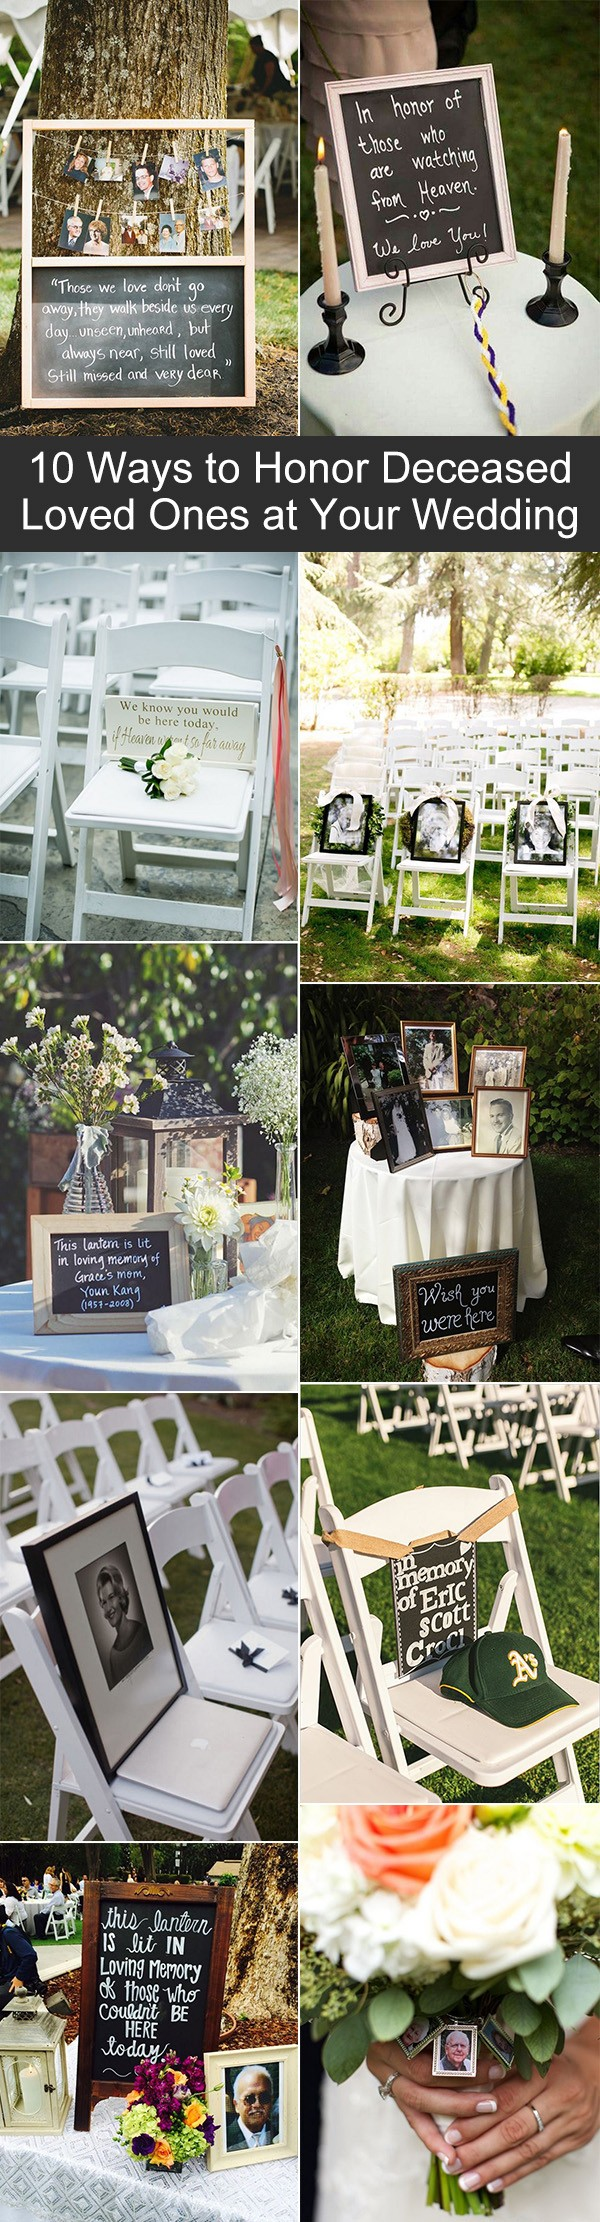 unique ways to honor deceased loved ones at your wedding